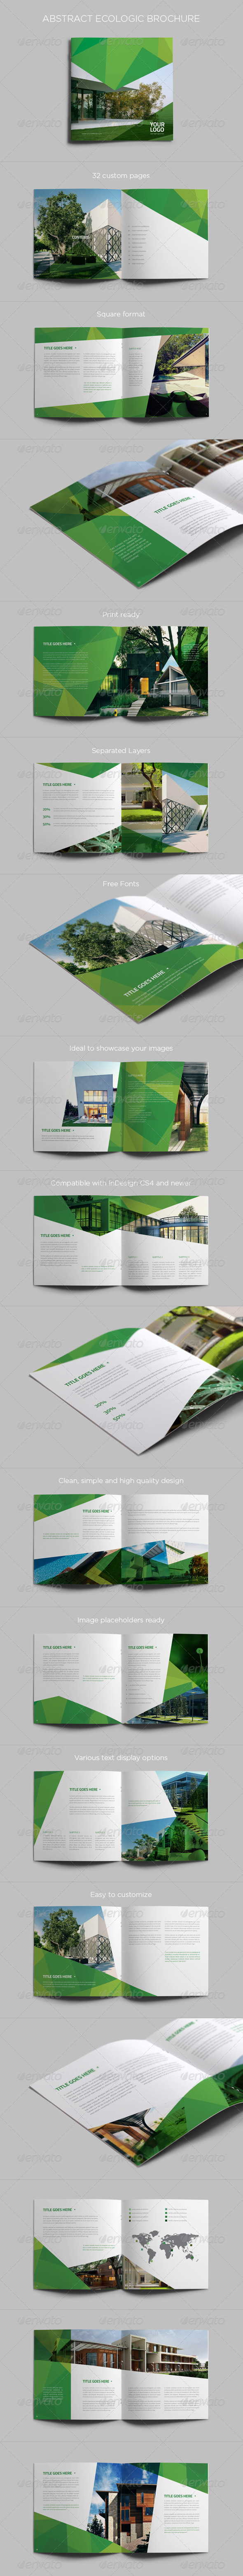 GraphicRiver Abstract Ecologic Brochure 7765796